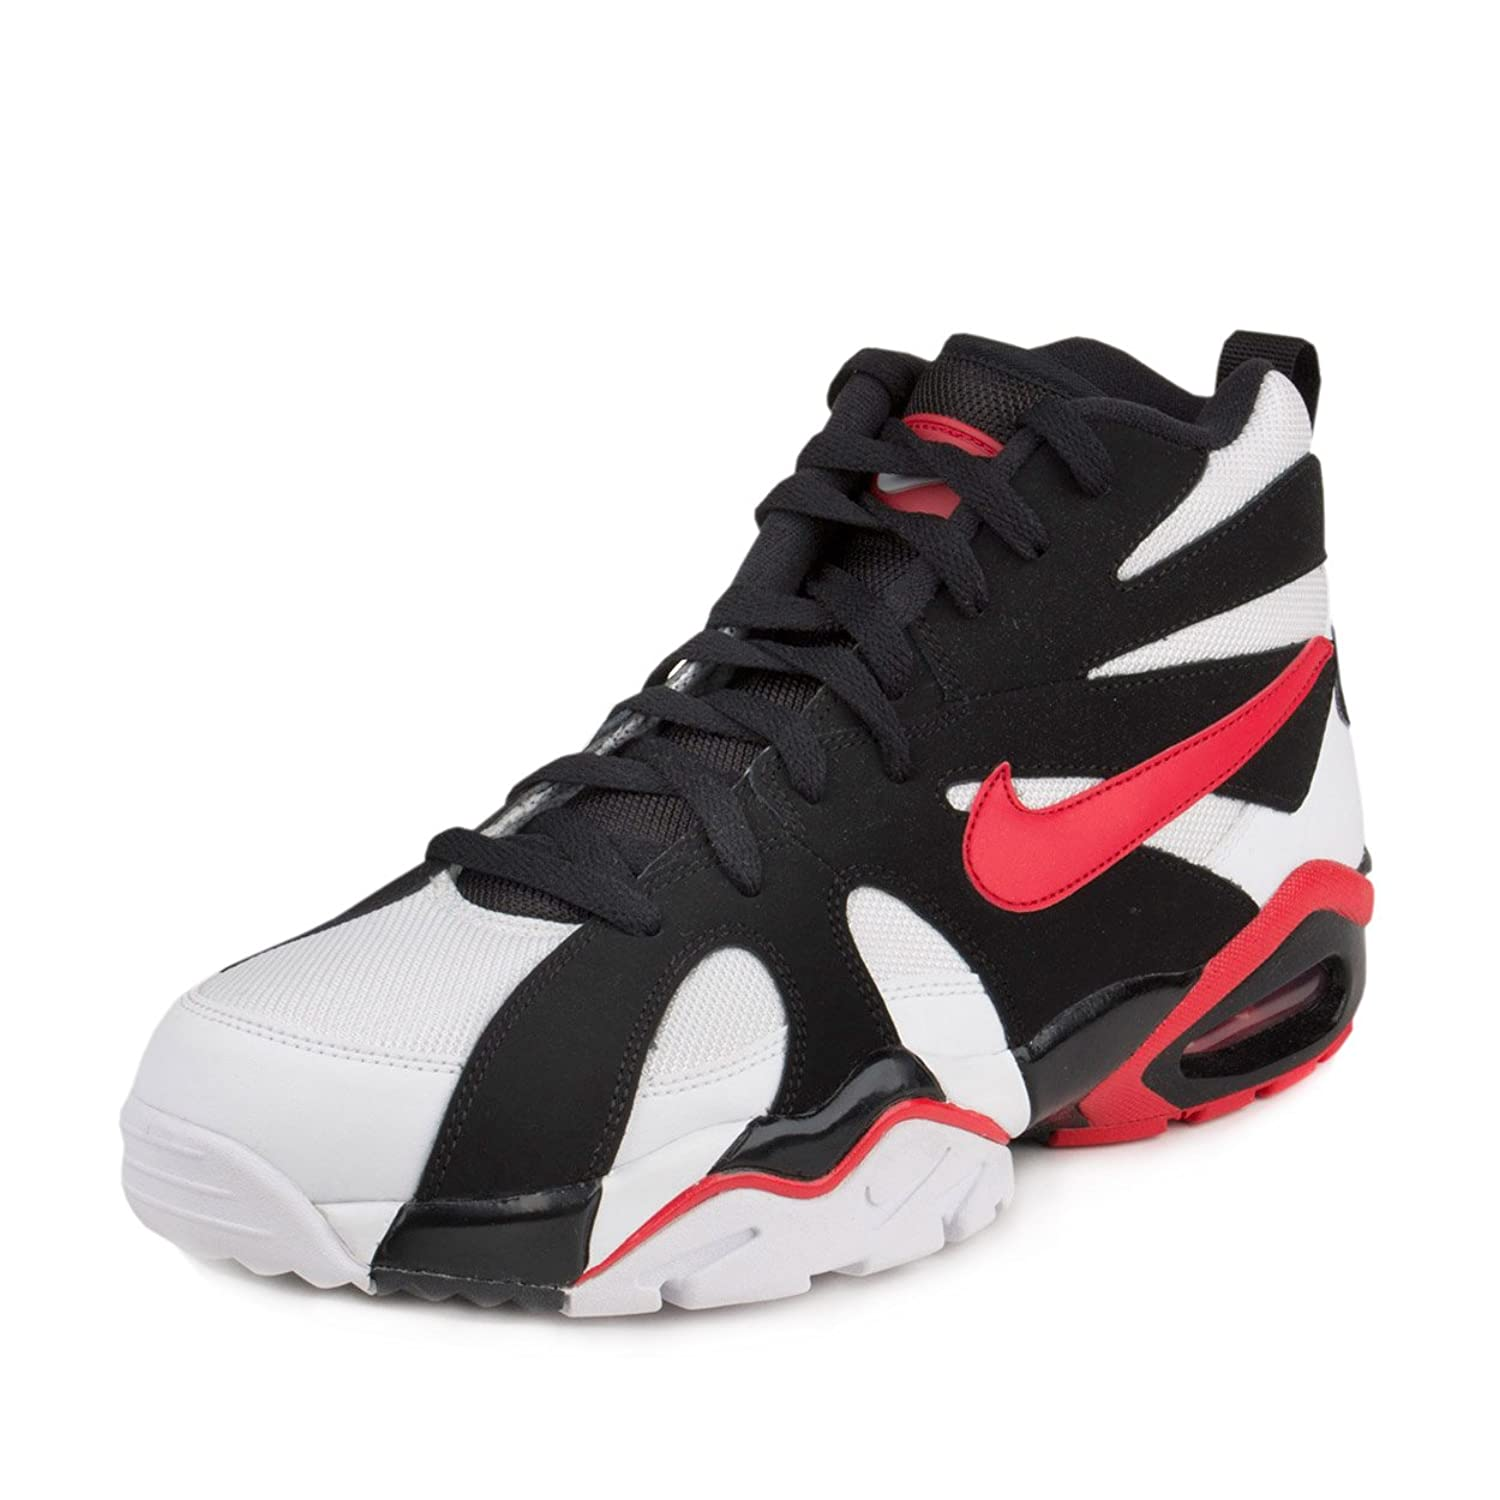 best service e871f dcf82 ... Amazon.com NIKE AIR DIAMOND FURY 96 WHITE UNIVERSITY RED BLACK Football  ...